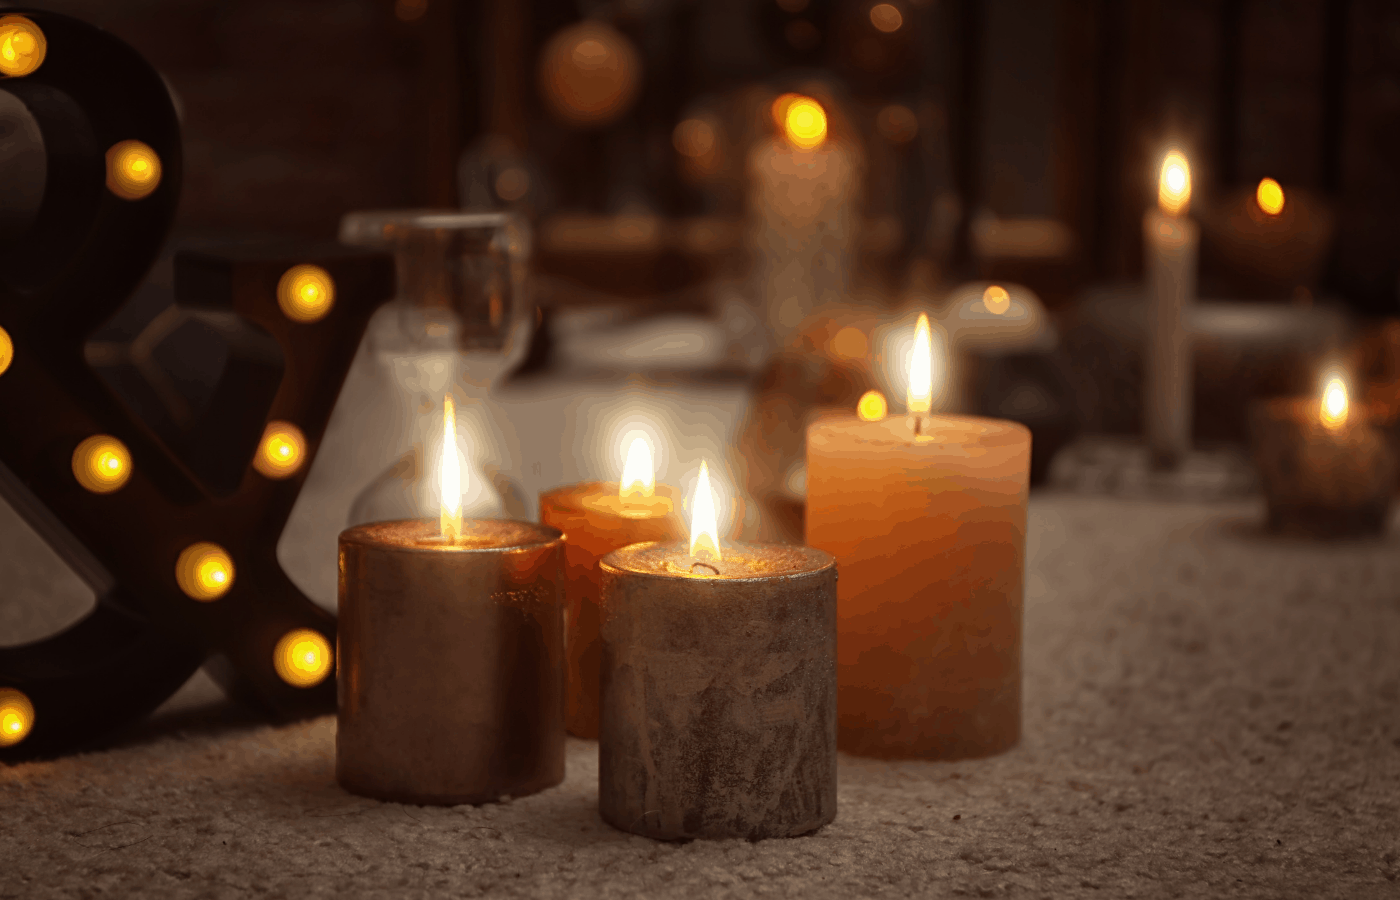 How to Get Black Candle Soot Out of Carpet